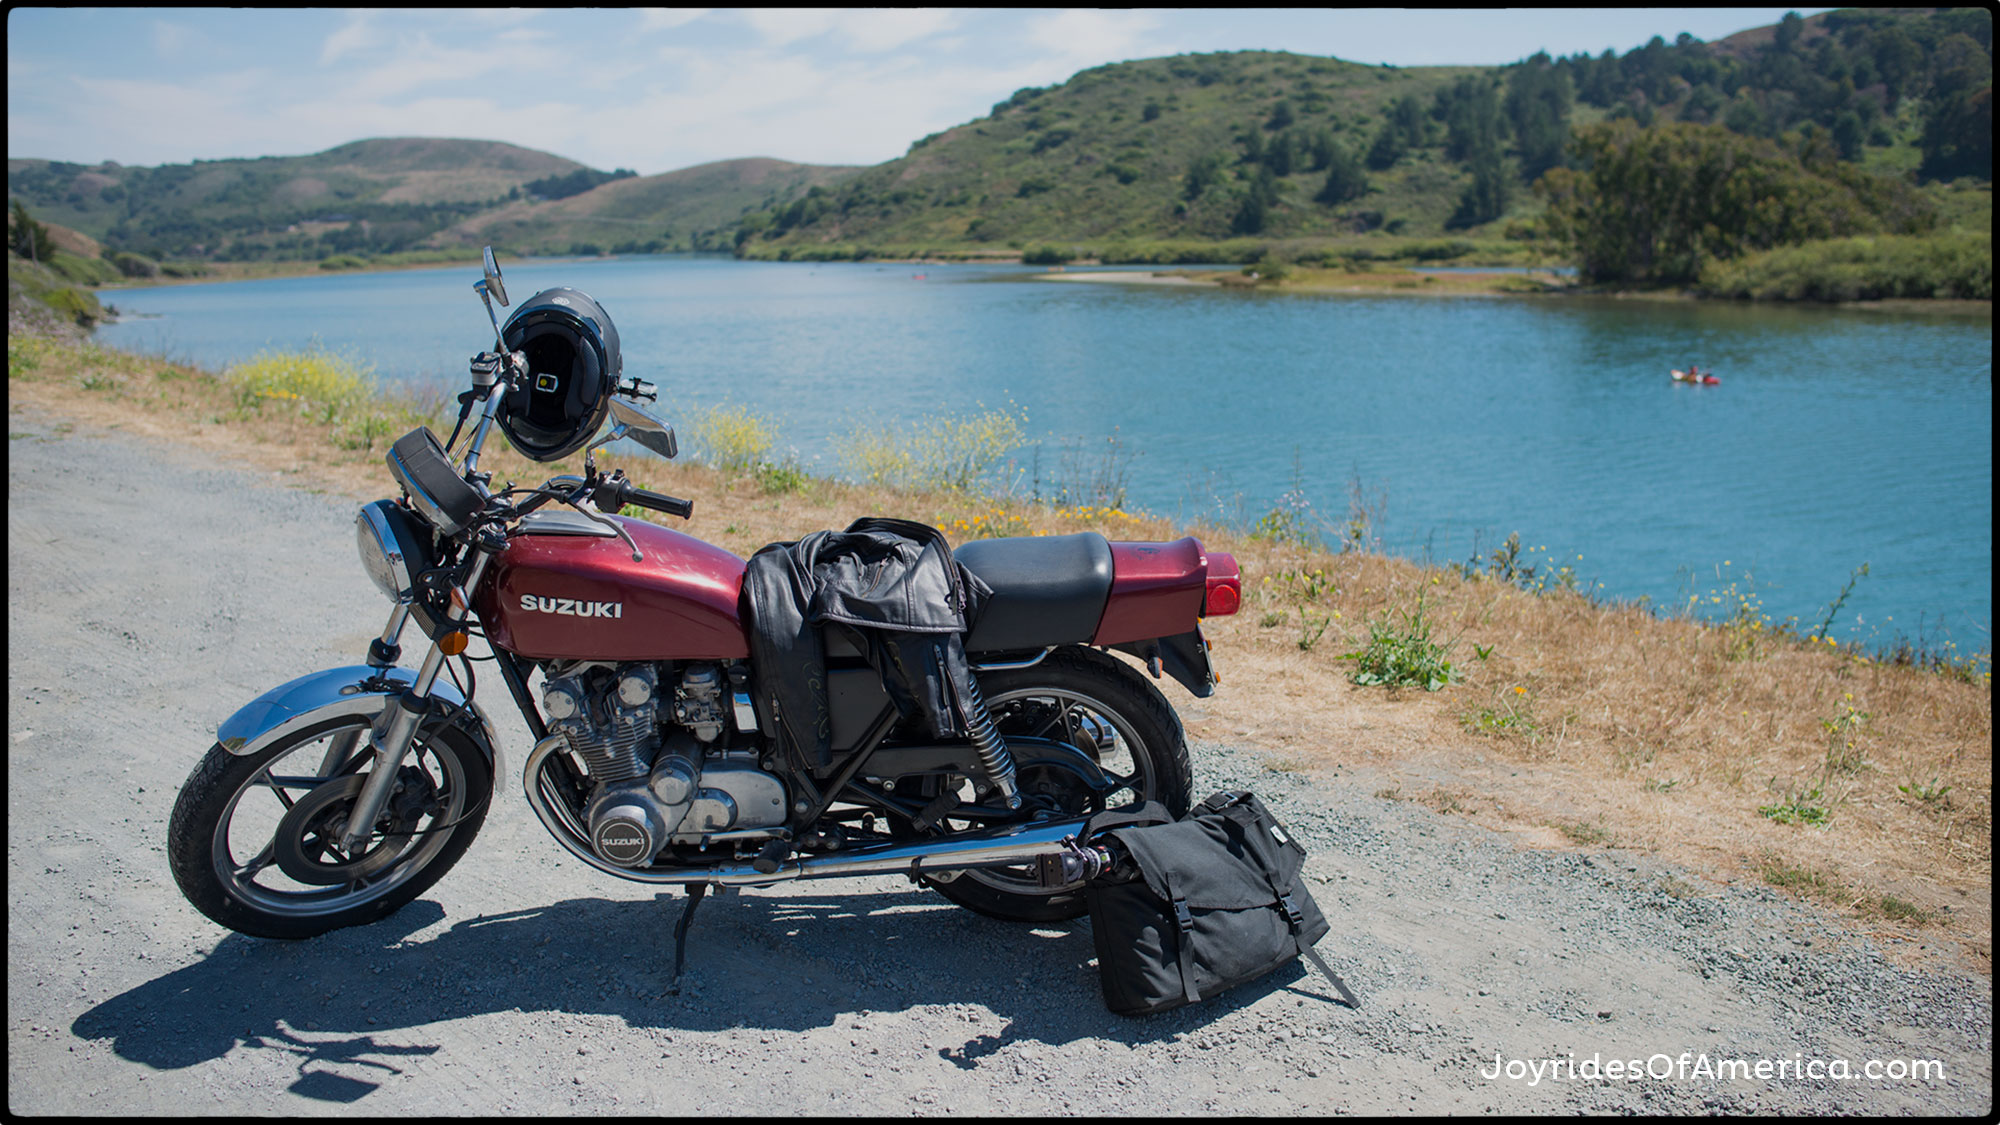 1980 Suzuki GS550 at the mouth of the Russian River. Jenner, California